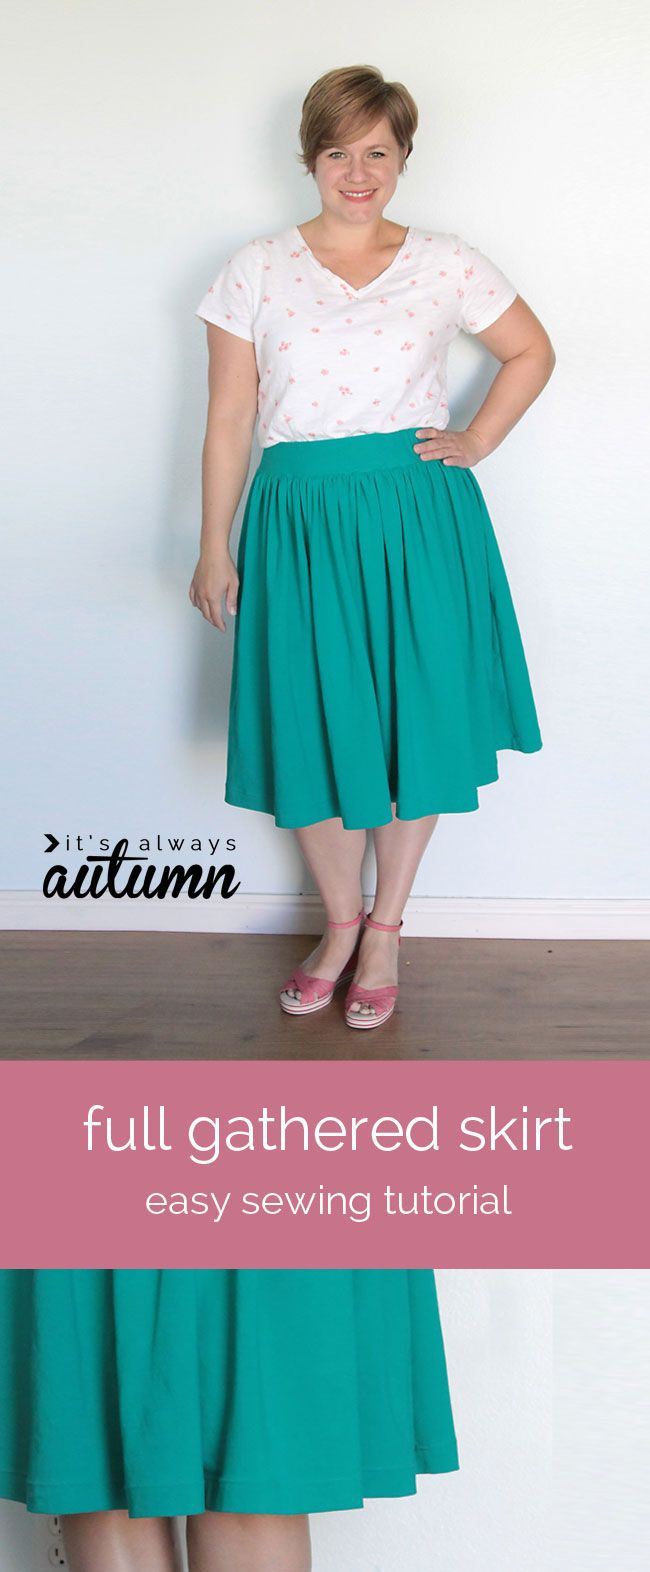 FREE PATTERNS8 ALERT: 15+ Pants and Skirts Sewing Tutorials: Get access to hundreds of free sewing patterns and unique modern designs